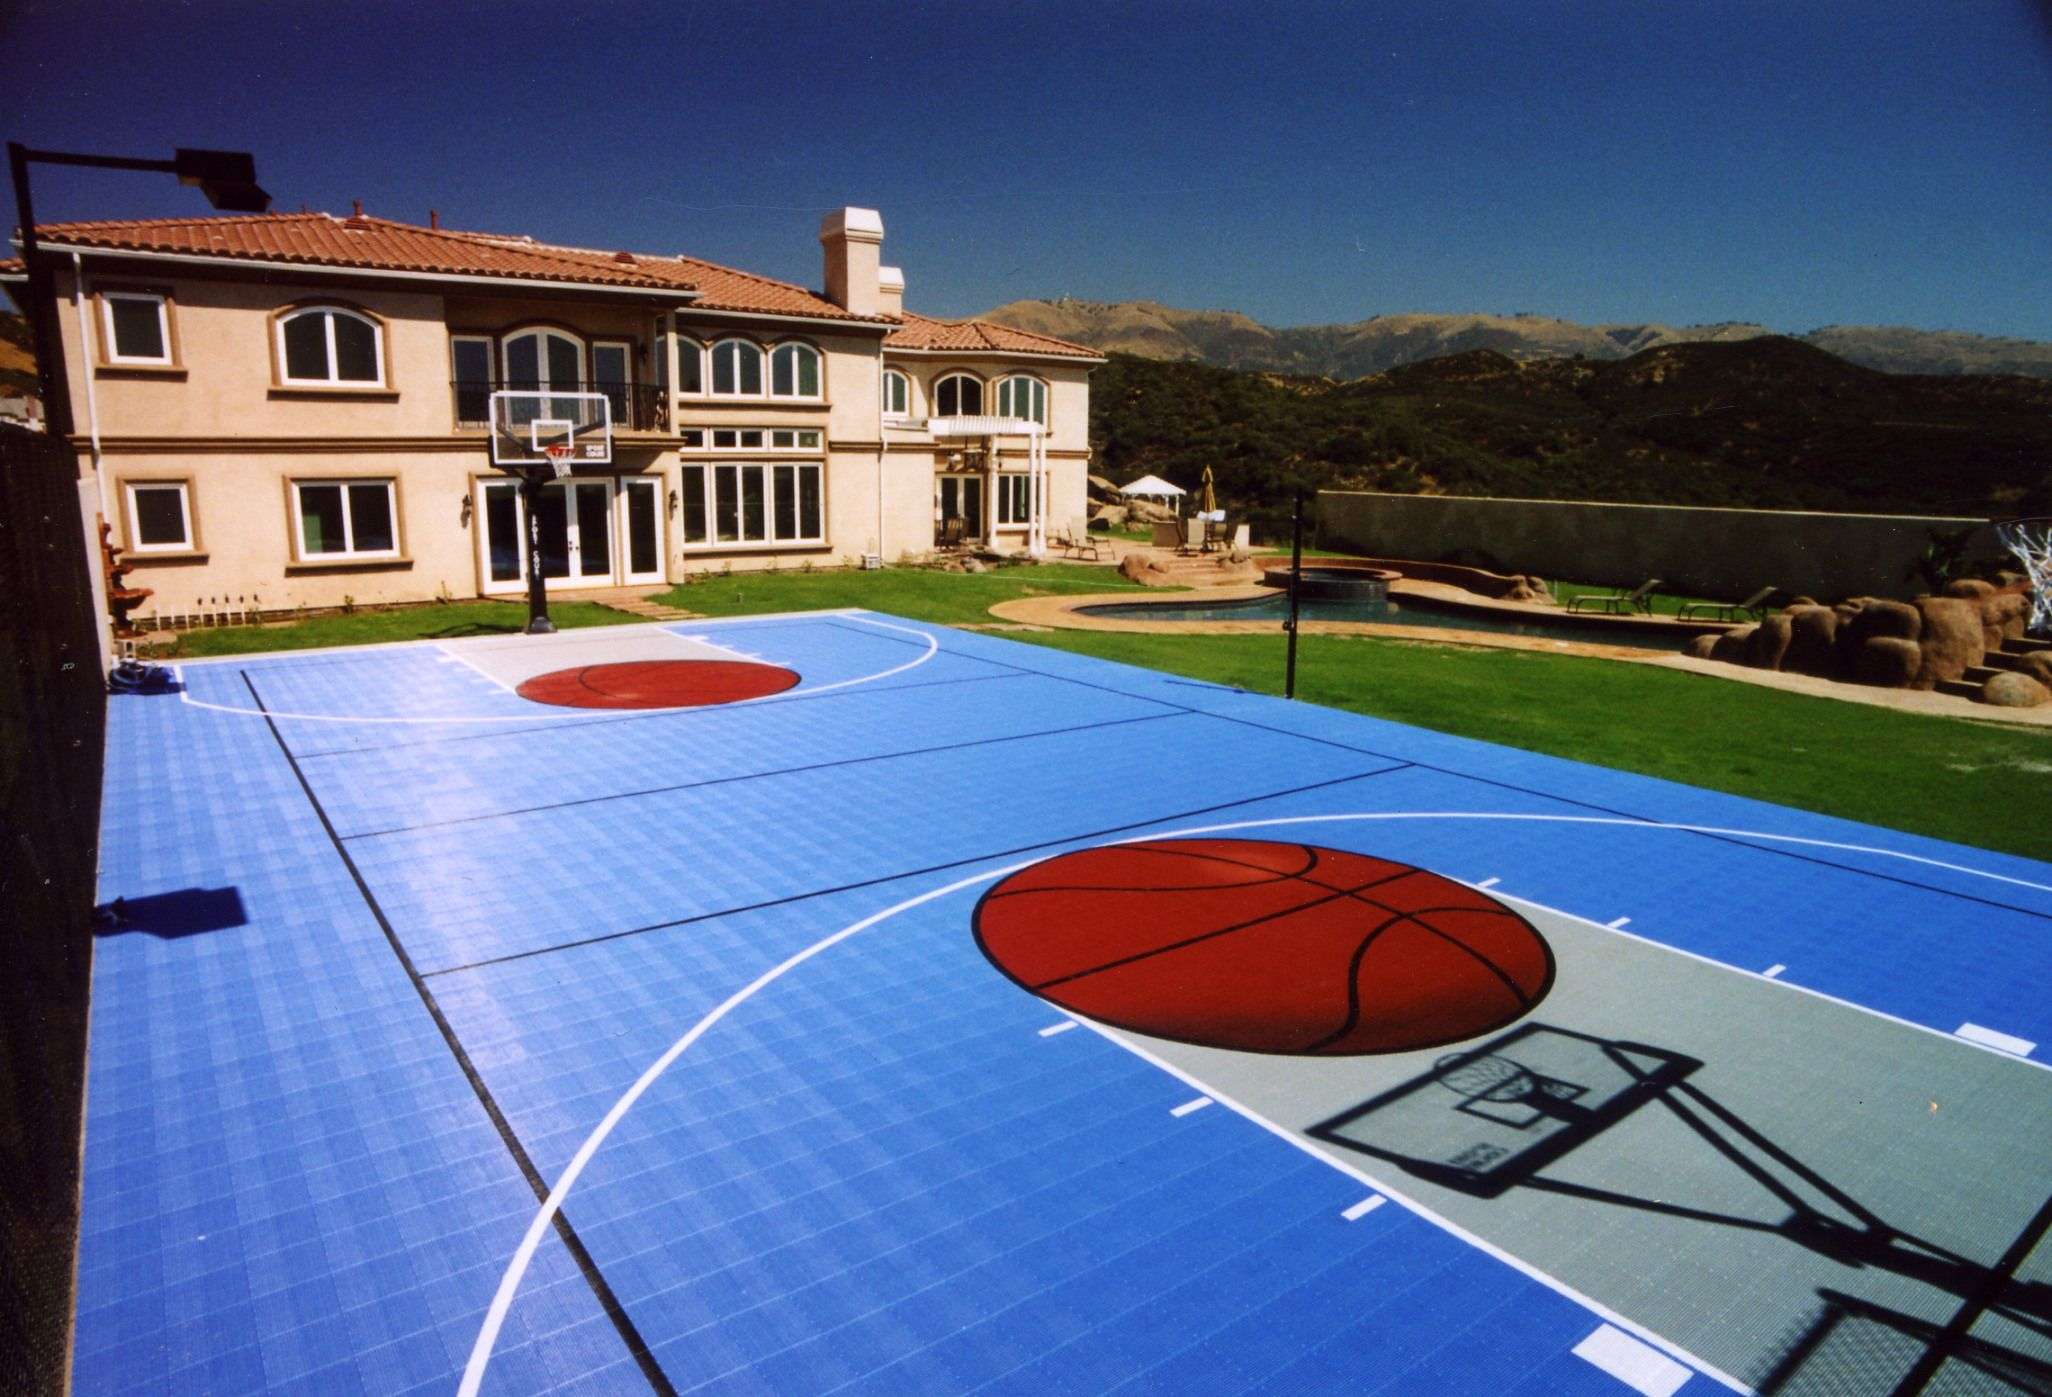 Check out this backyard court perfect for the basketball for Basketball court home